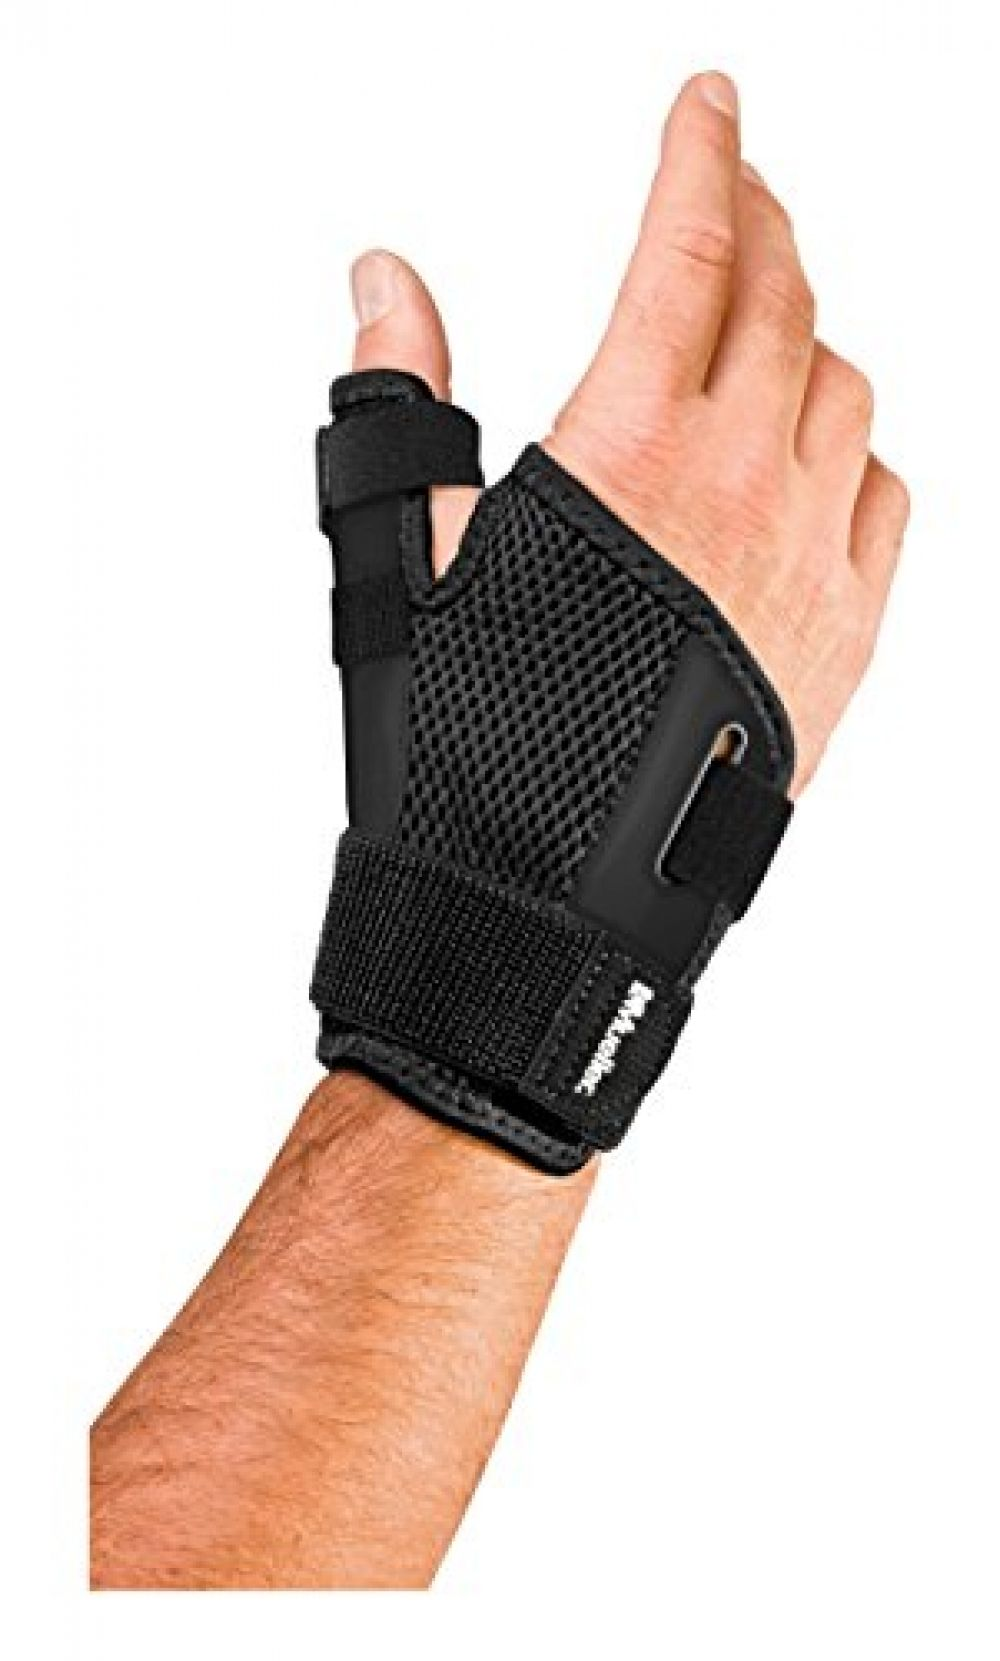 Mueller Reversible Thumb Stabilizer, Black, One Size Fits